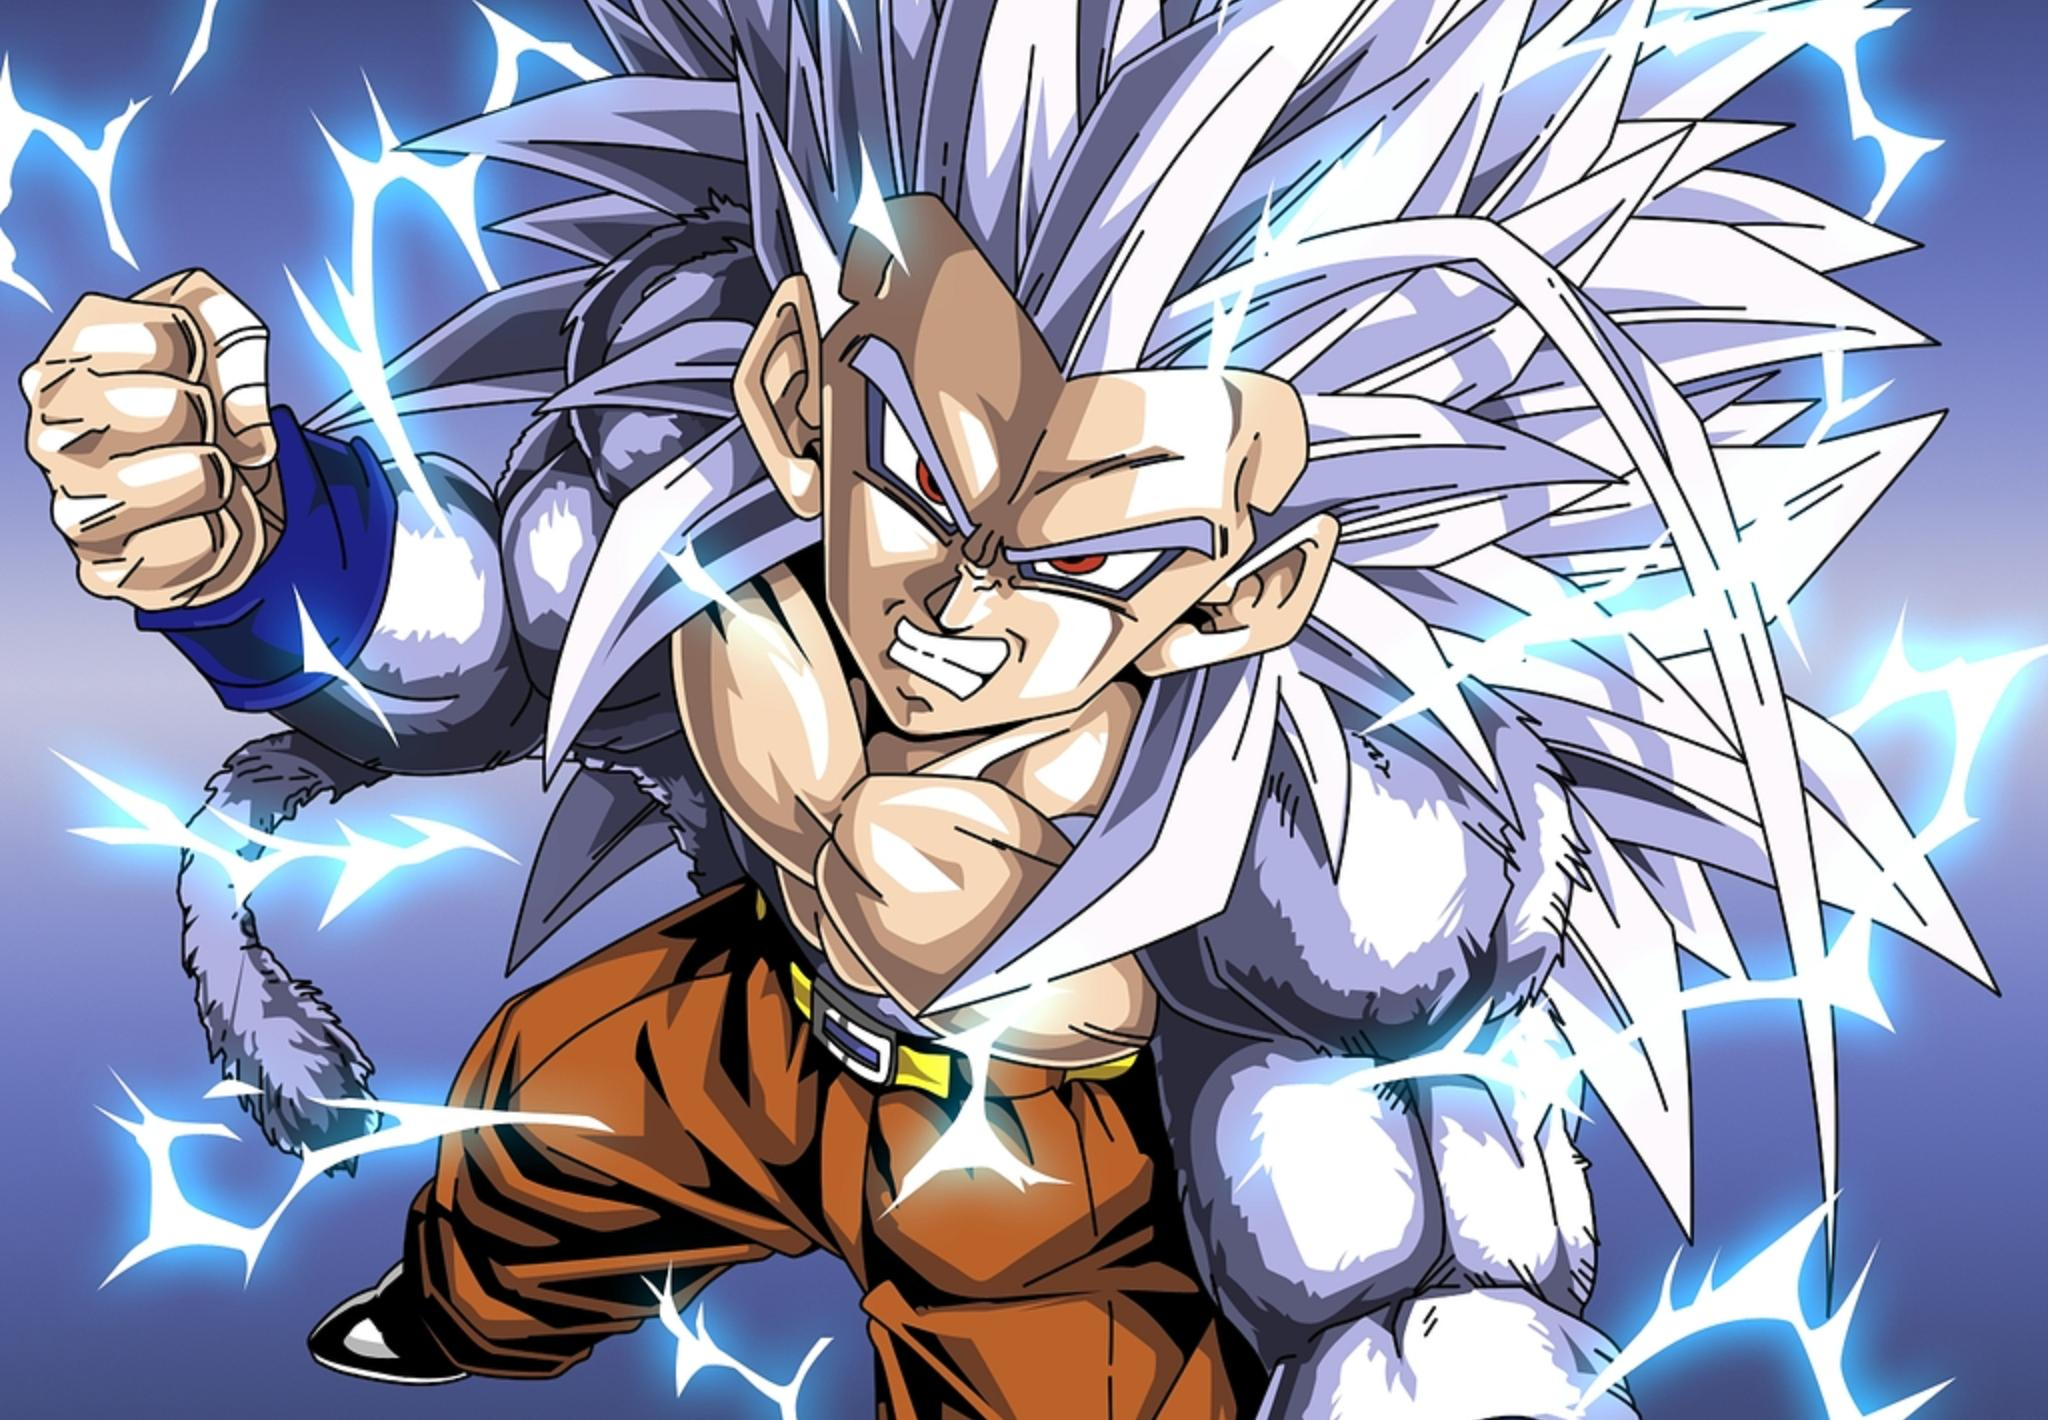 Goku Gohan Vegeta Trunks Fictional Character Anime Cartoon Fiction